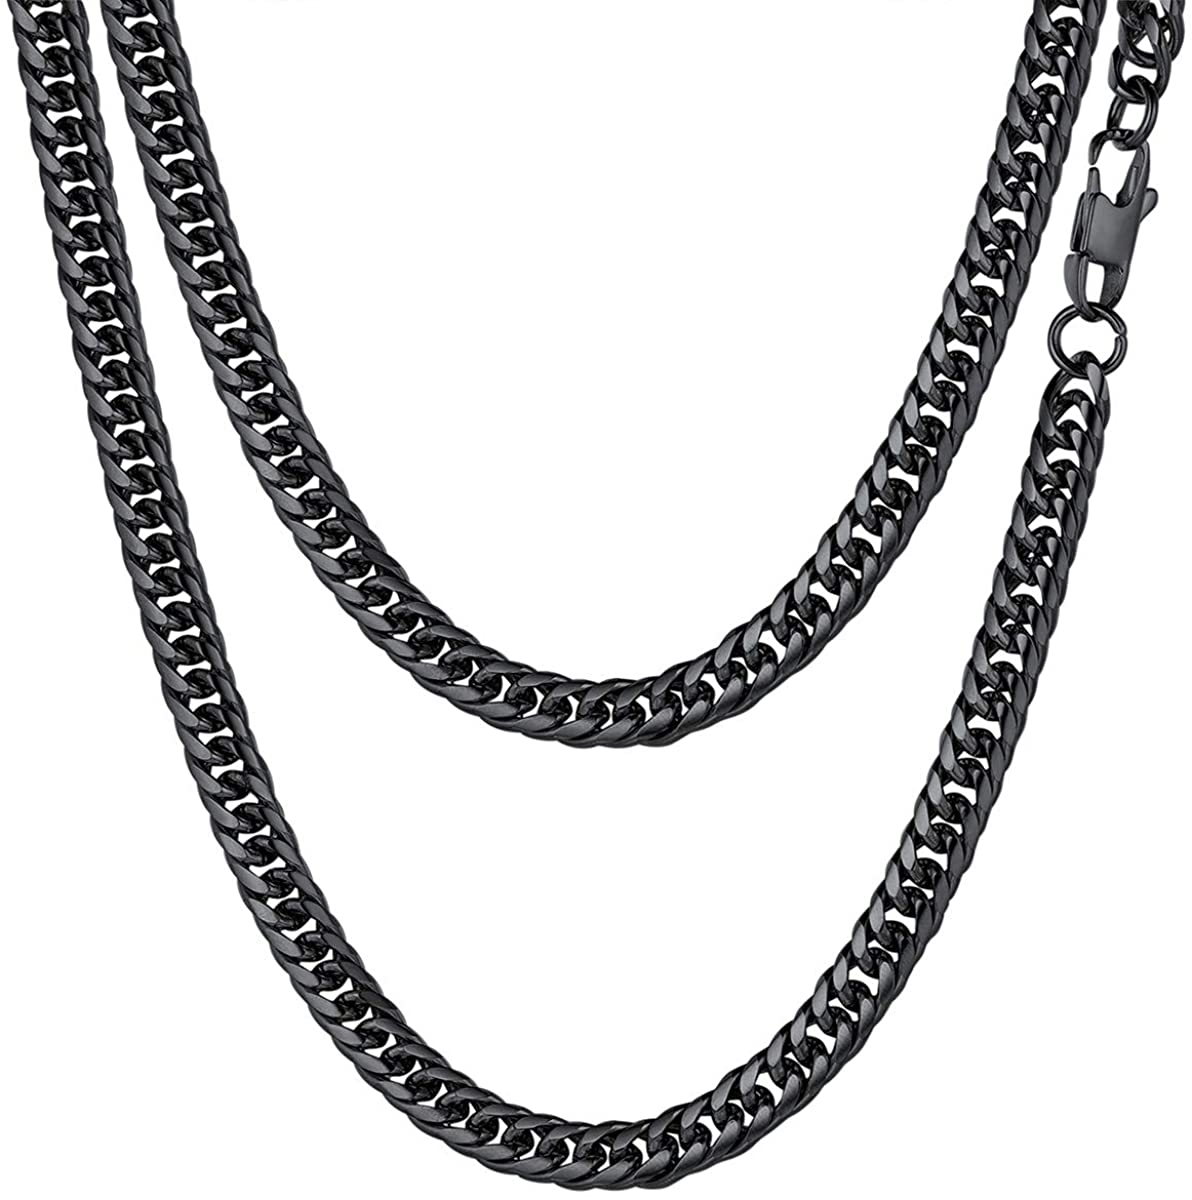 FOCALOOK 6MM Stainless Steel Cuban Link Chain Necklace for Women Men, 22/26/28/30 Inches, 18K Gold Plated/Black Gun Plated, Customized Name Necklace(with Gift Box)